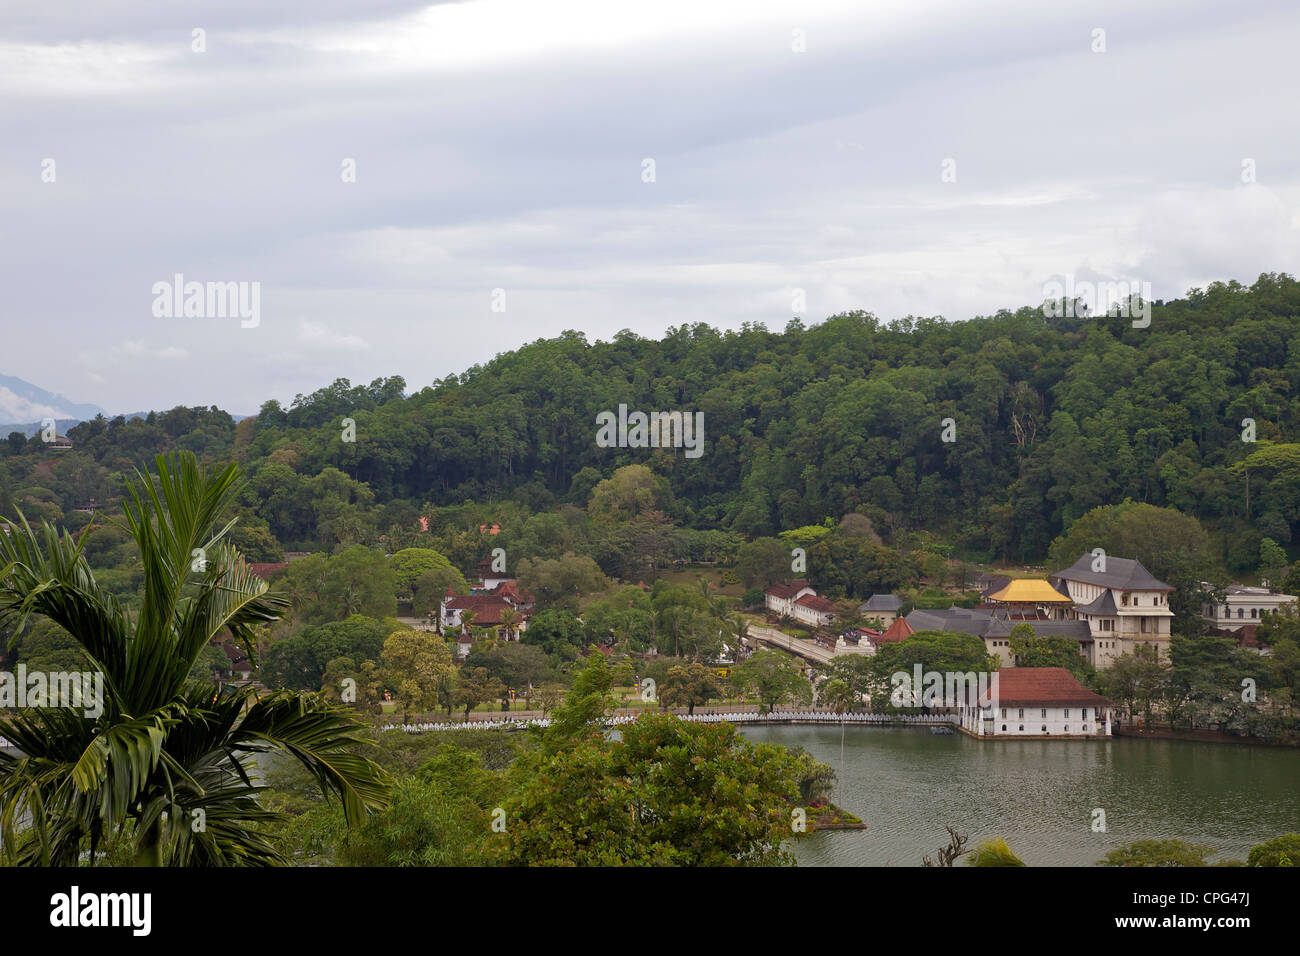 View of lake and Temple of the Tooth Relic or Sri Dalada Maligawa, Kandy, Sri Lanka, Asia - Stock Image